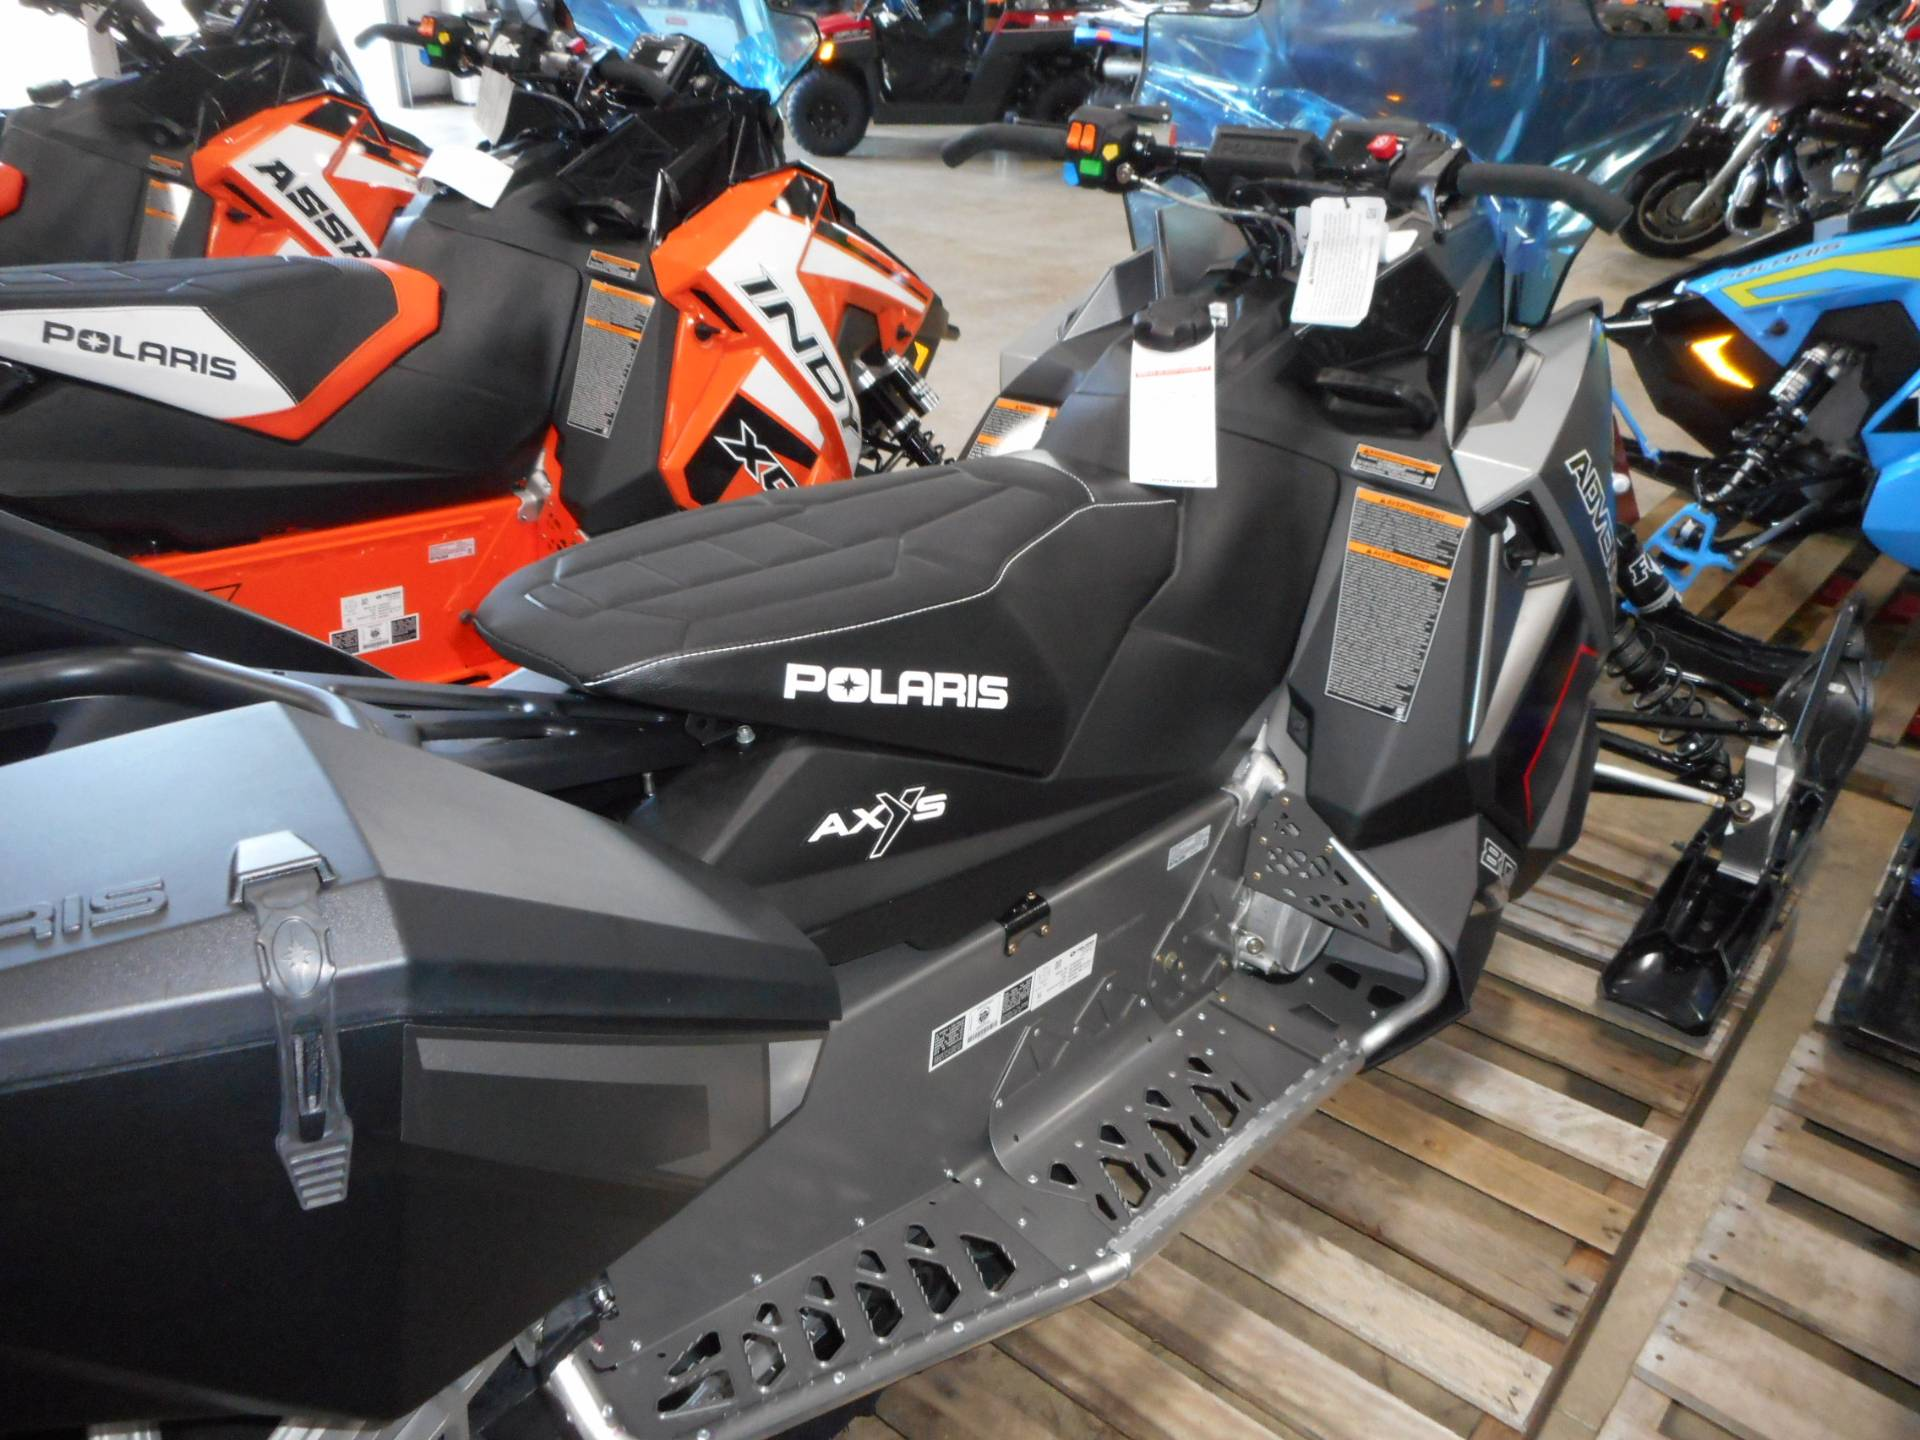 2019 Polaris 800 Switchback Adventure in Belvidere, Illinois - Photo 11